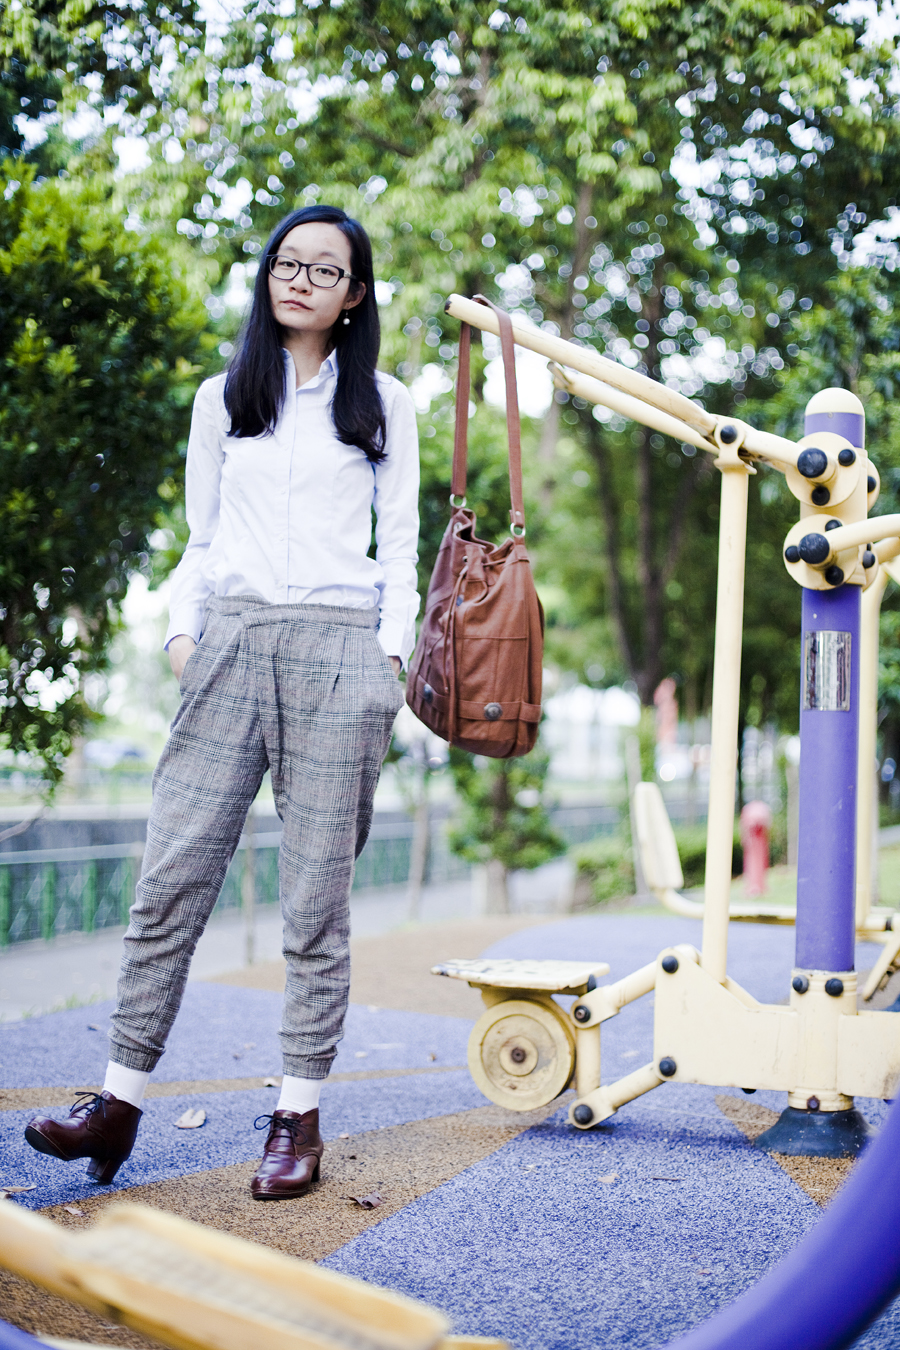 Outfit of the day (#ootd): Gap black-rimmed glasses, G2000 blouse, Zara plaid pants, Taobao oxford heels, Gentlefawn leather bag.